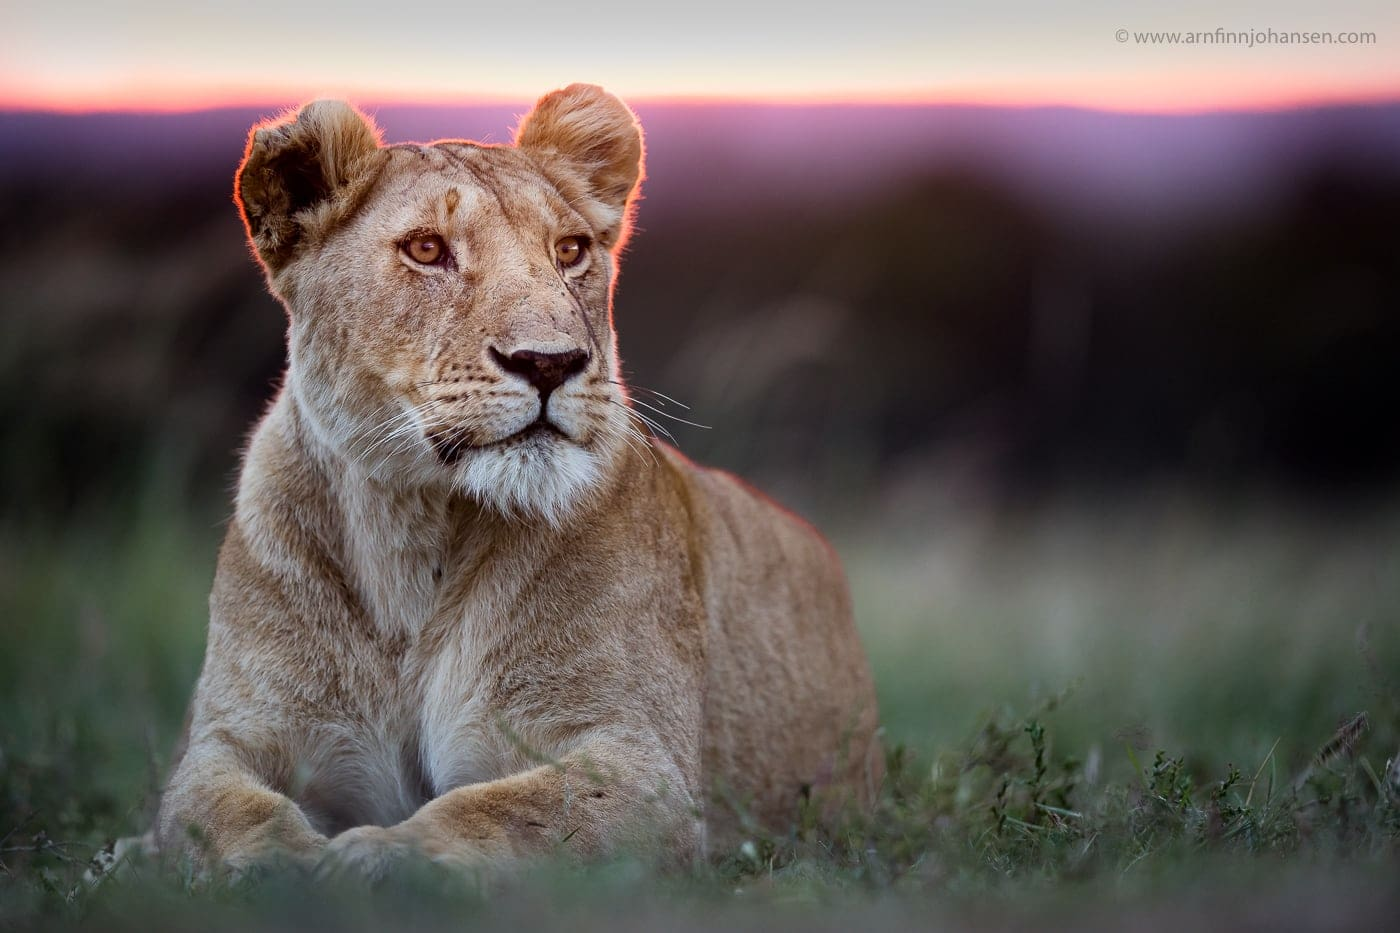 A Lioness Photographed Against The Setting Sun In The Locations To Be Used For The NaturesLens Wildlife Of Africas Maasai Mara Photography Holiday